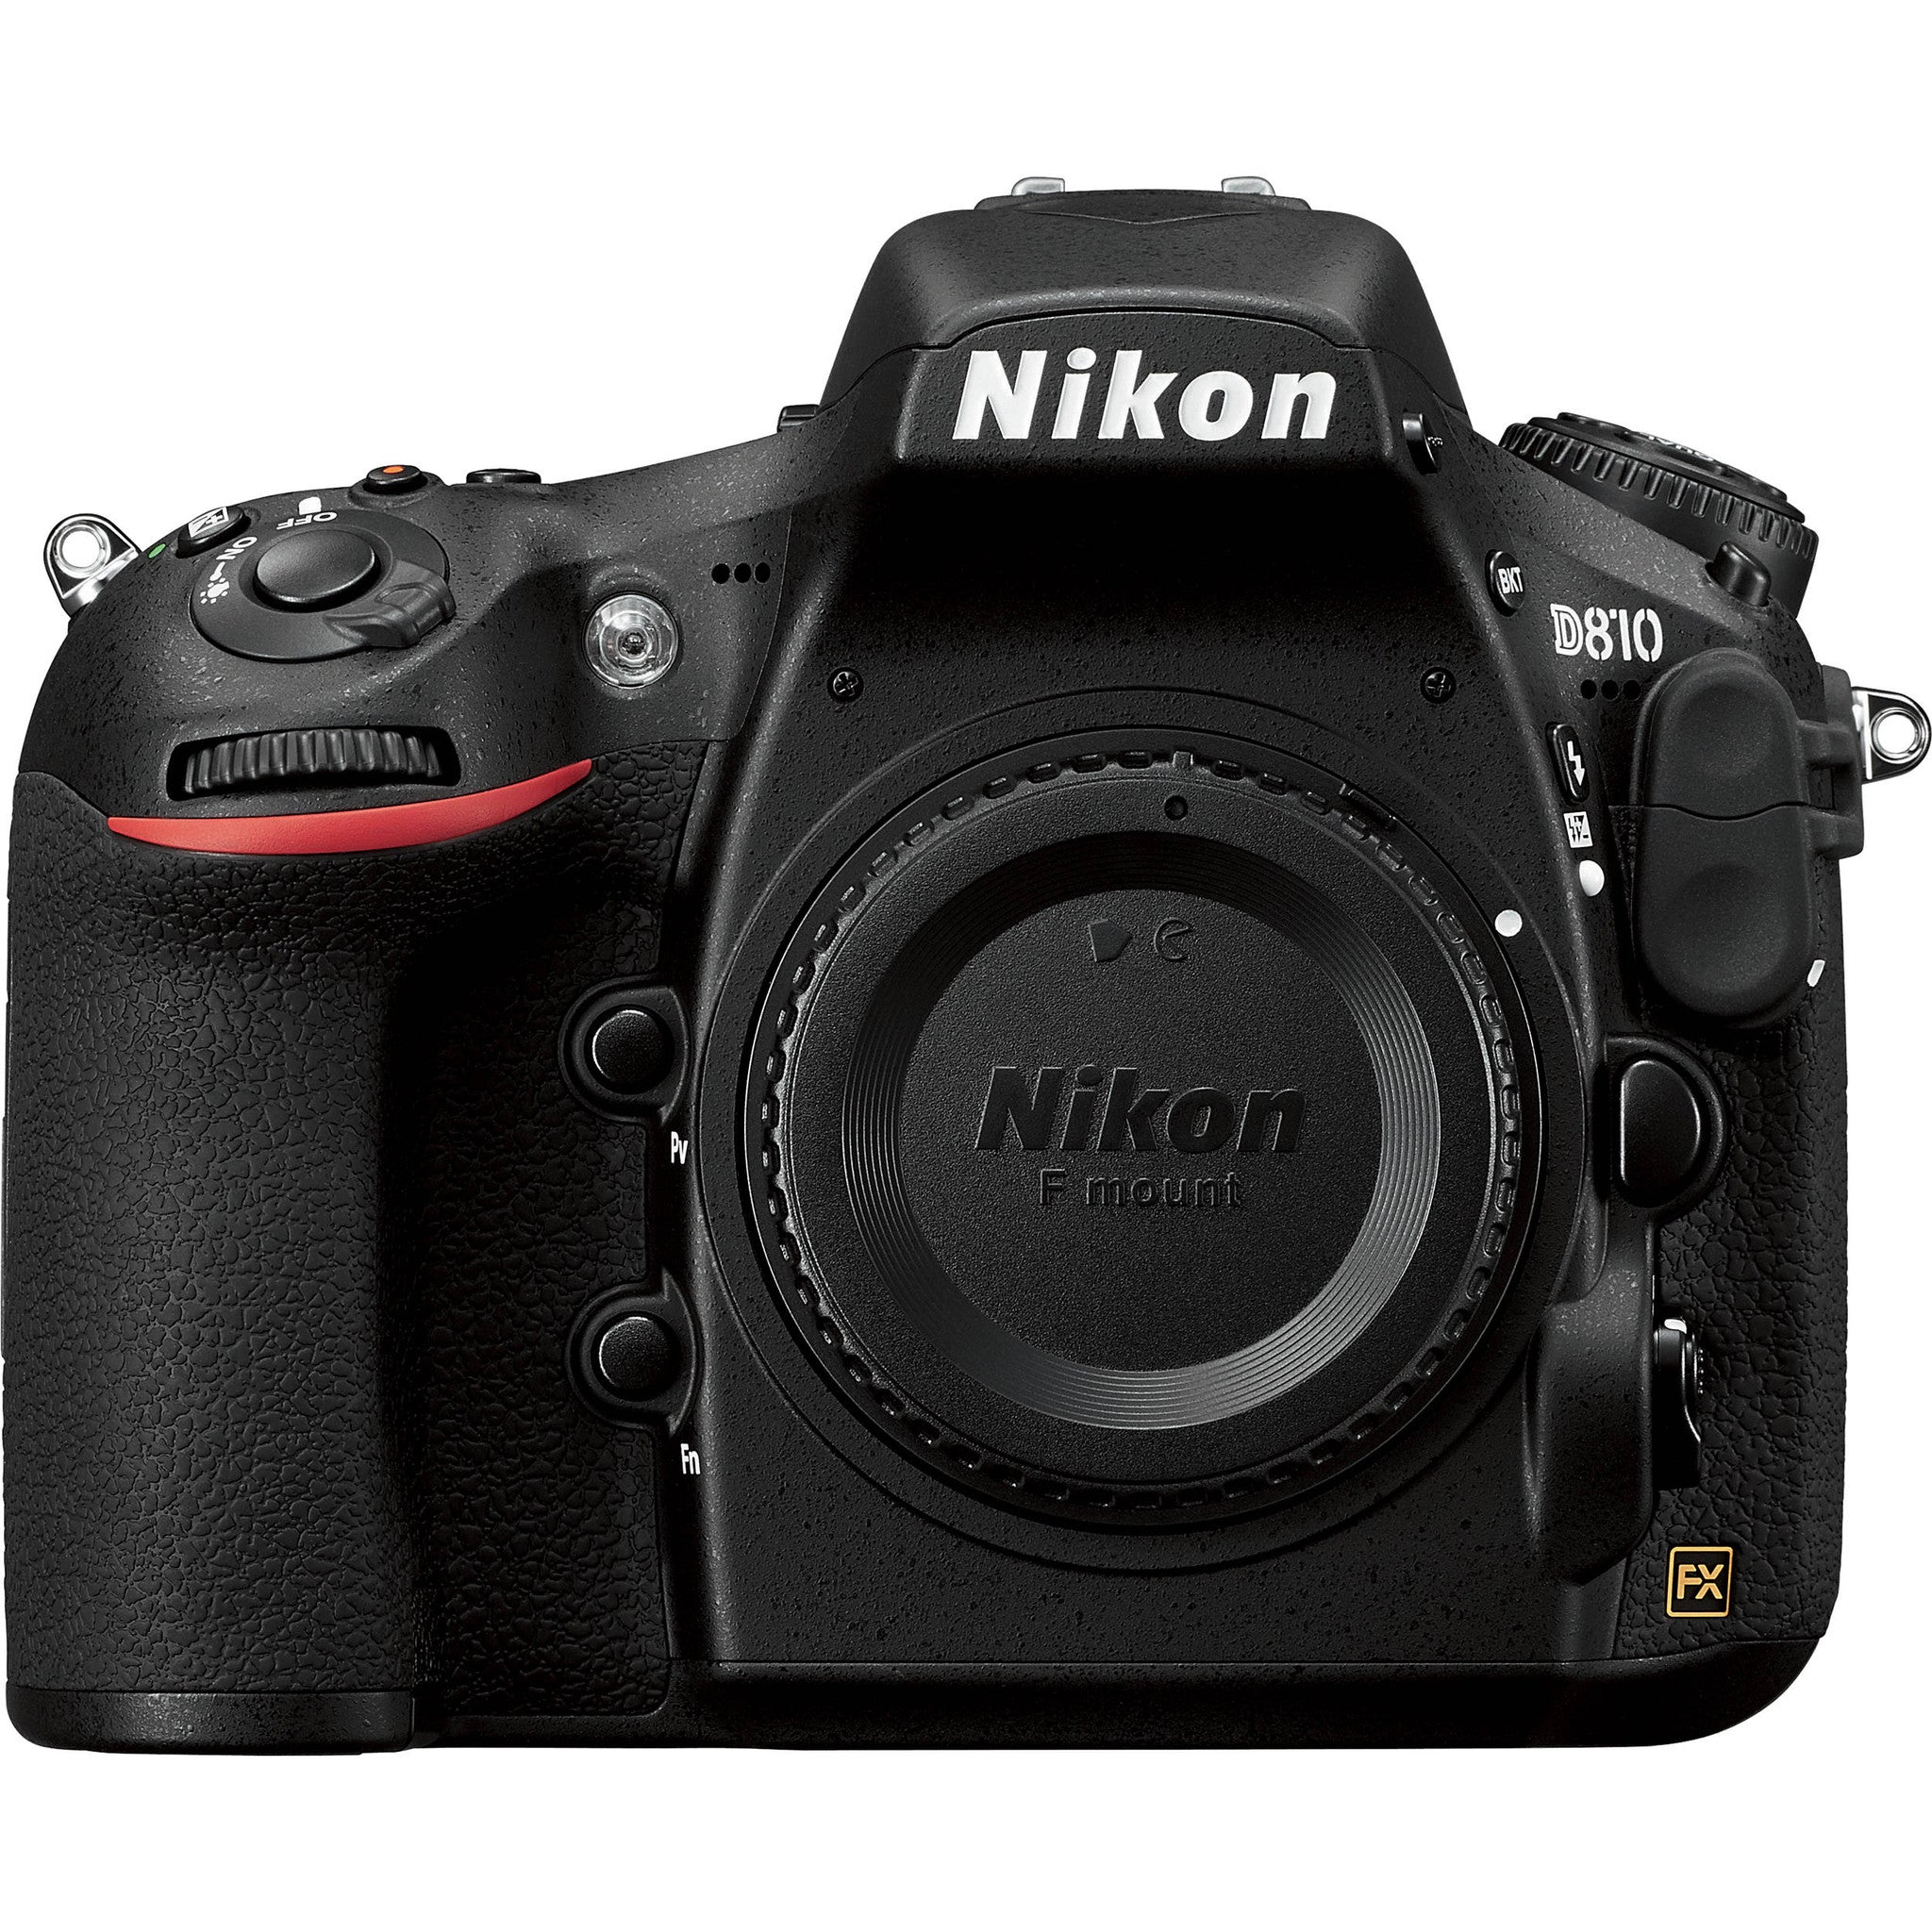 Nikon D810 FX Digital SLR Body Only